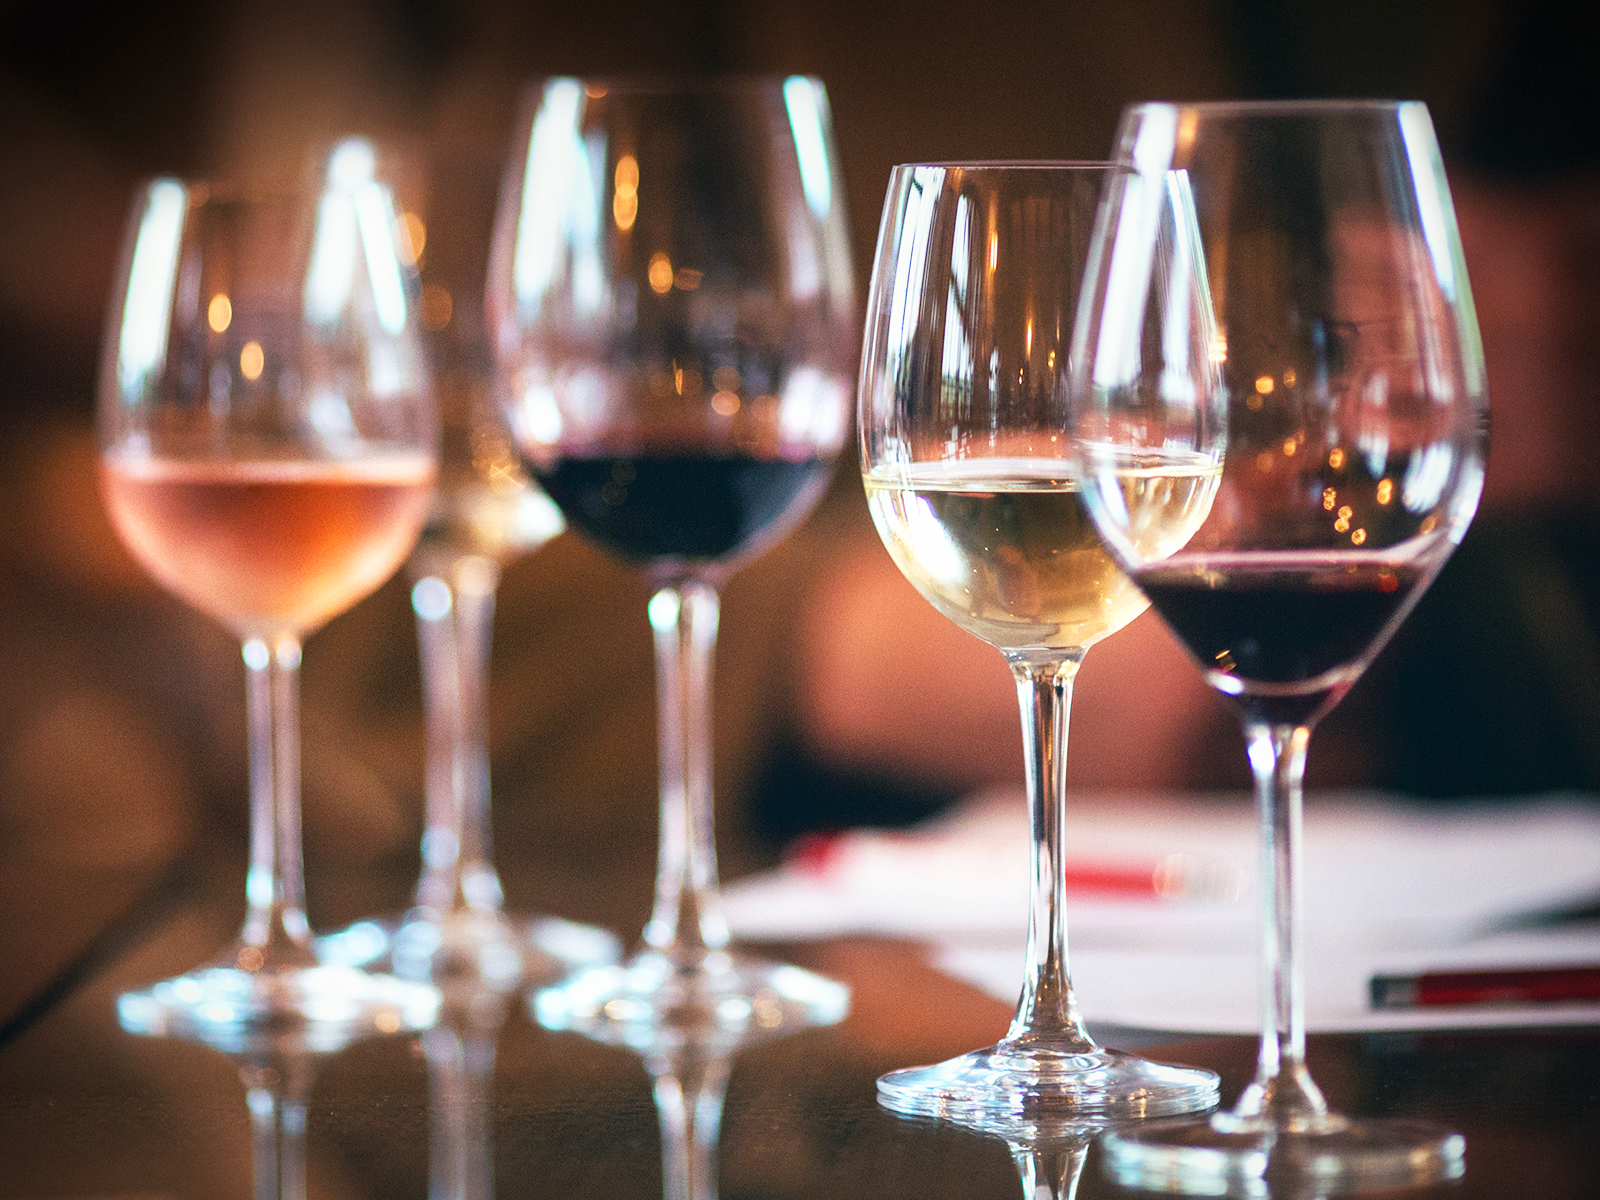 WIneglasses with different kinds of wines.